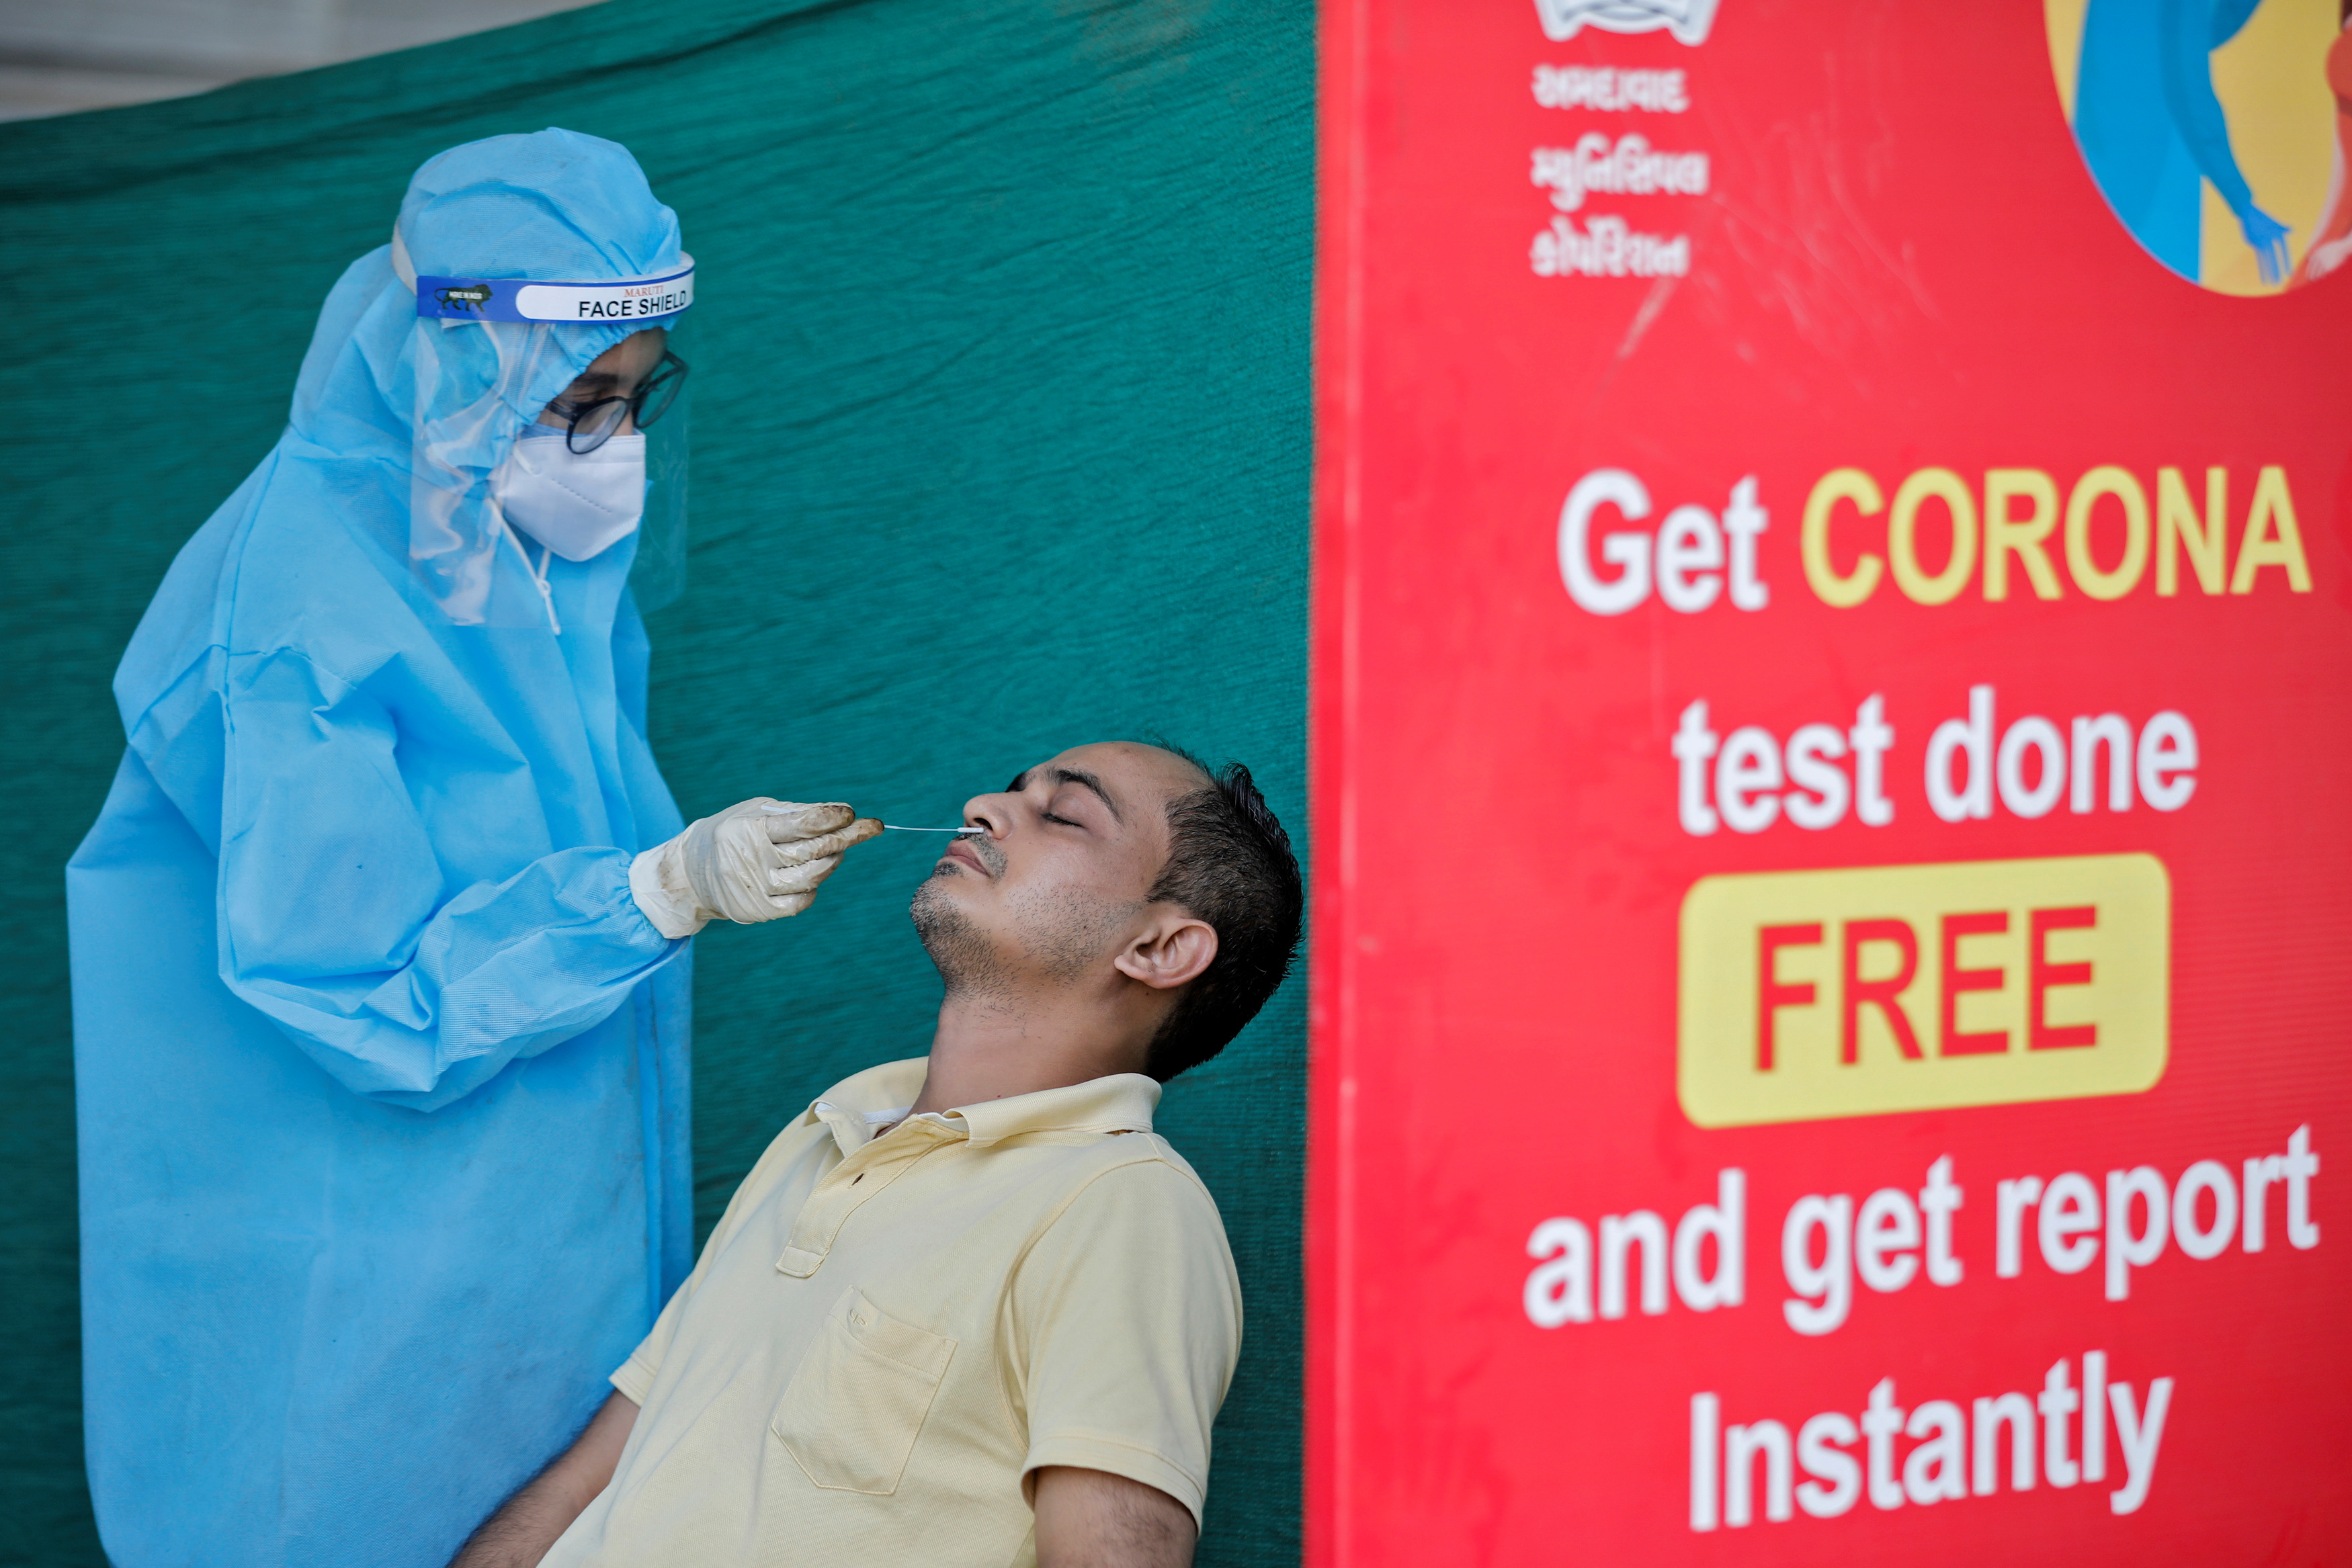 A healthcare worker wearing personal protective equipment (PPE) takes swab from a man during a testing campaign for the coronavirus disease (COVID-19), in Ahmedabad, India November 24, 2020. REUTERS/Amit Dave